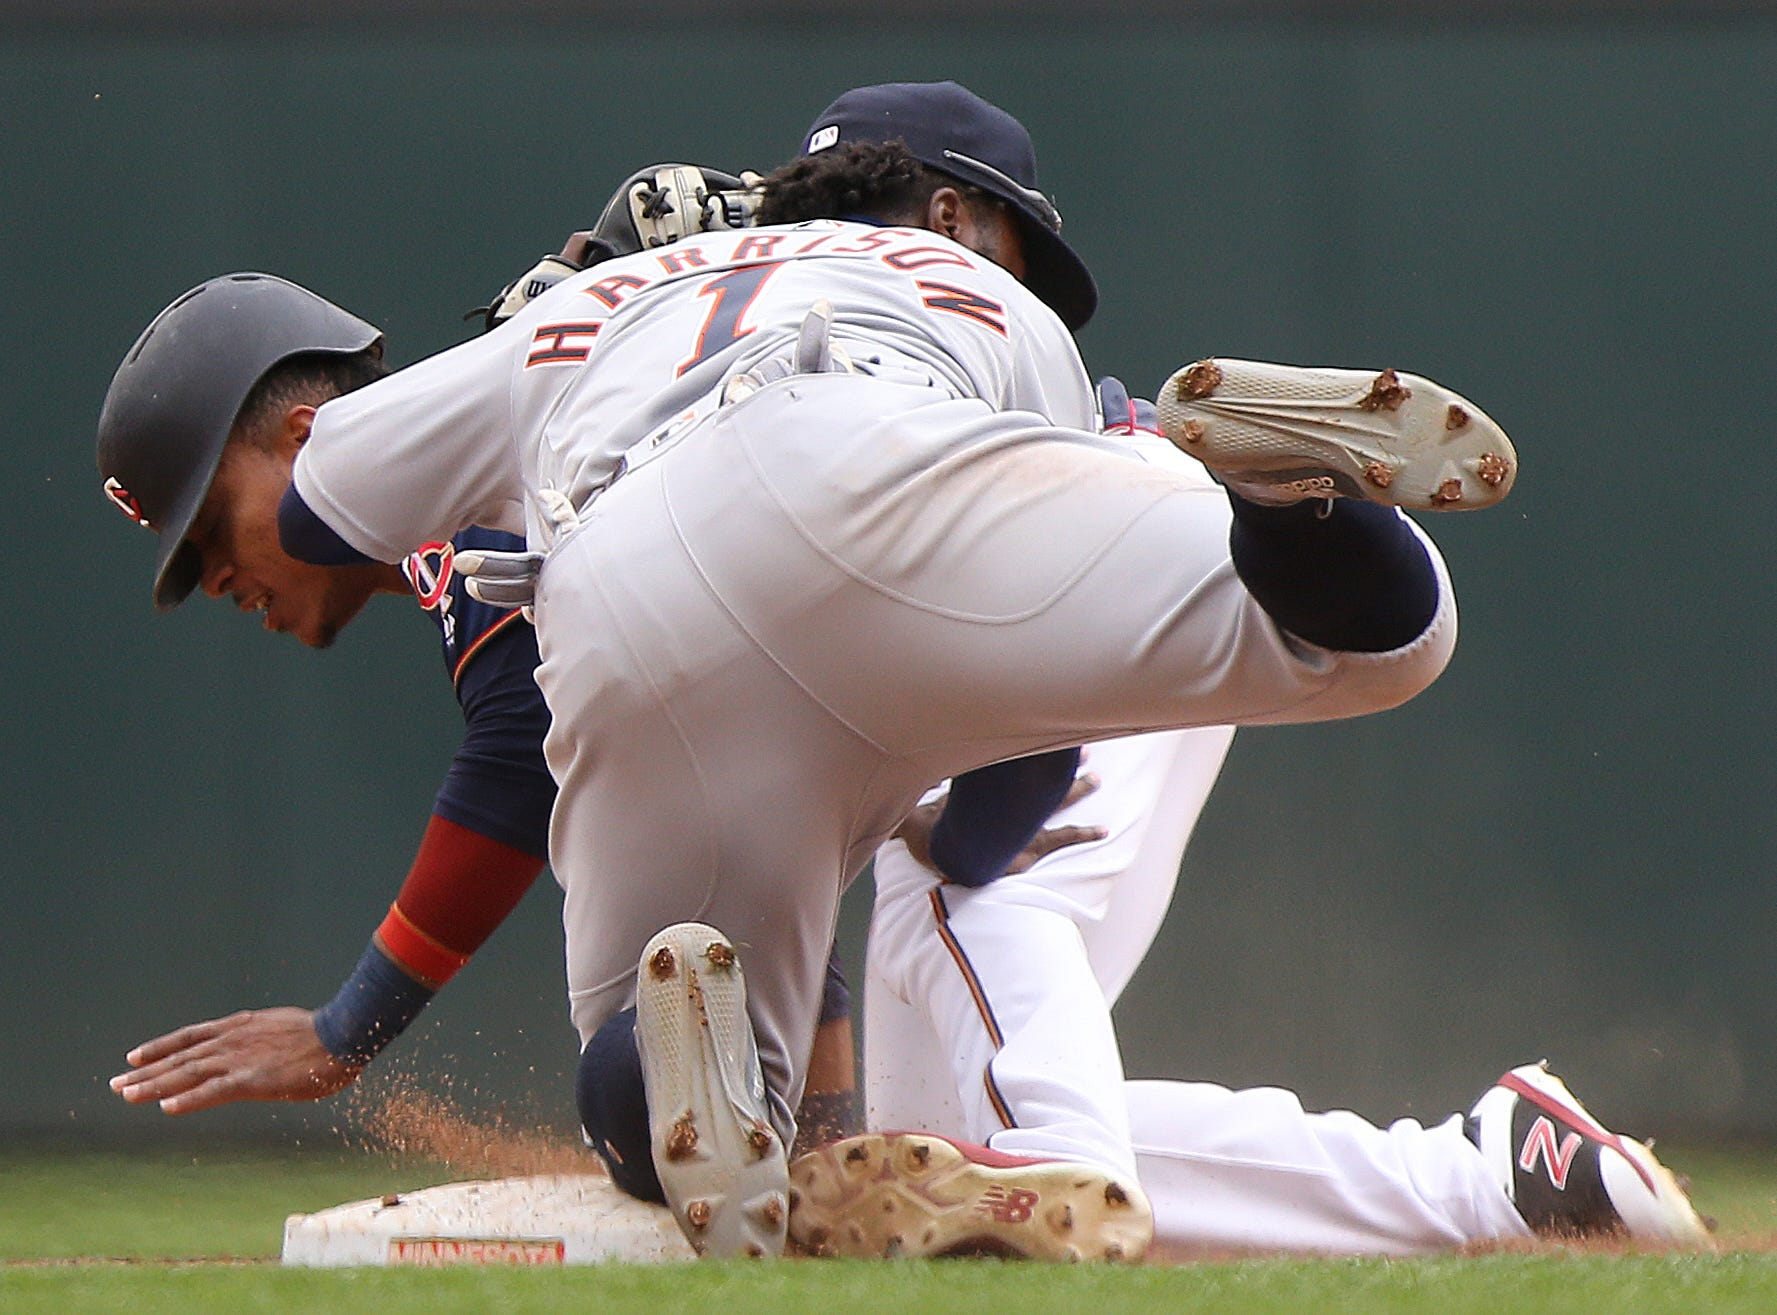 Minnesota Twins' Jorge Polanco is tagged out at second base by Detroit Tigers' Josh Harrison. The Twins won 4-3.